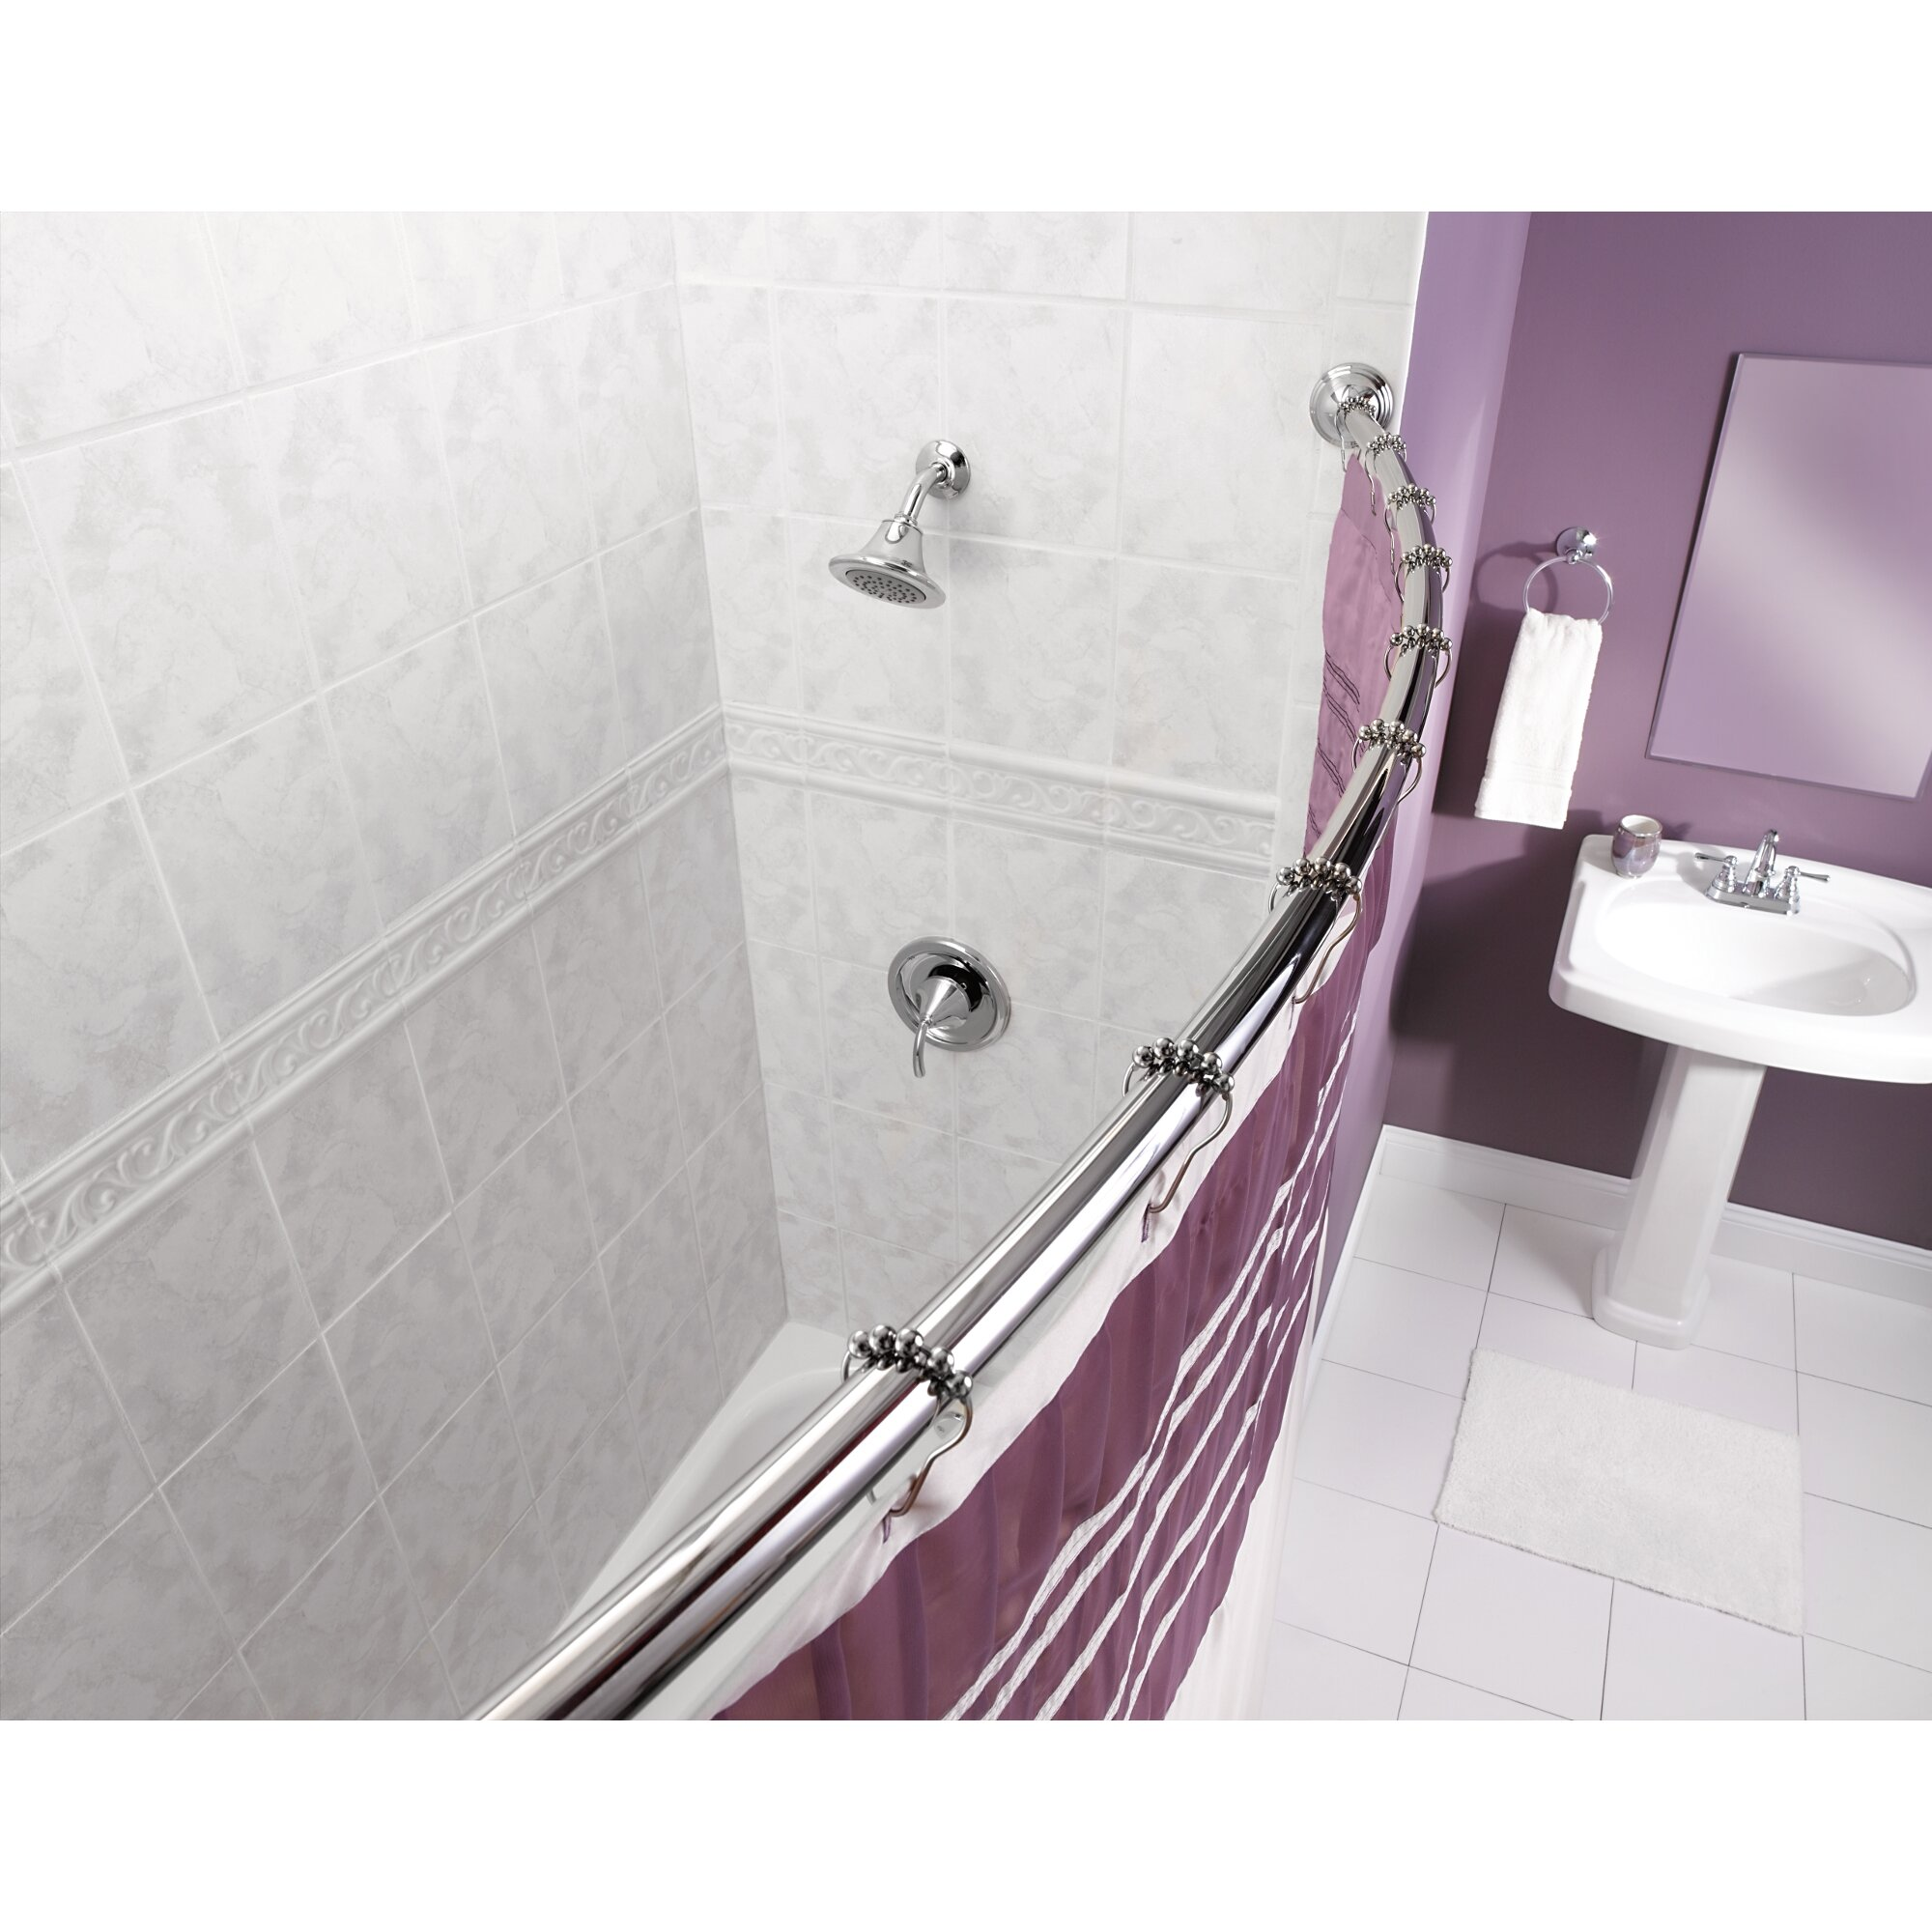 Curved curtain rod - 59 Curved Shower Curtain Rod